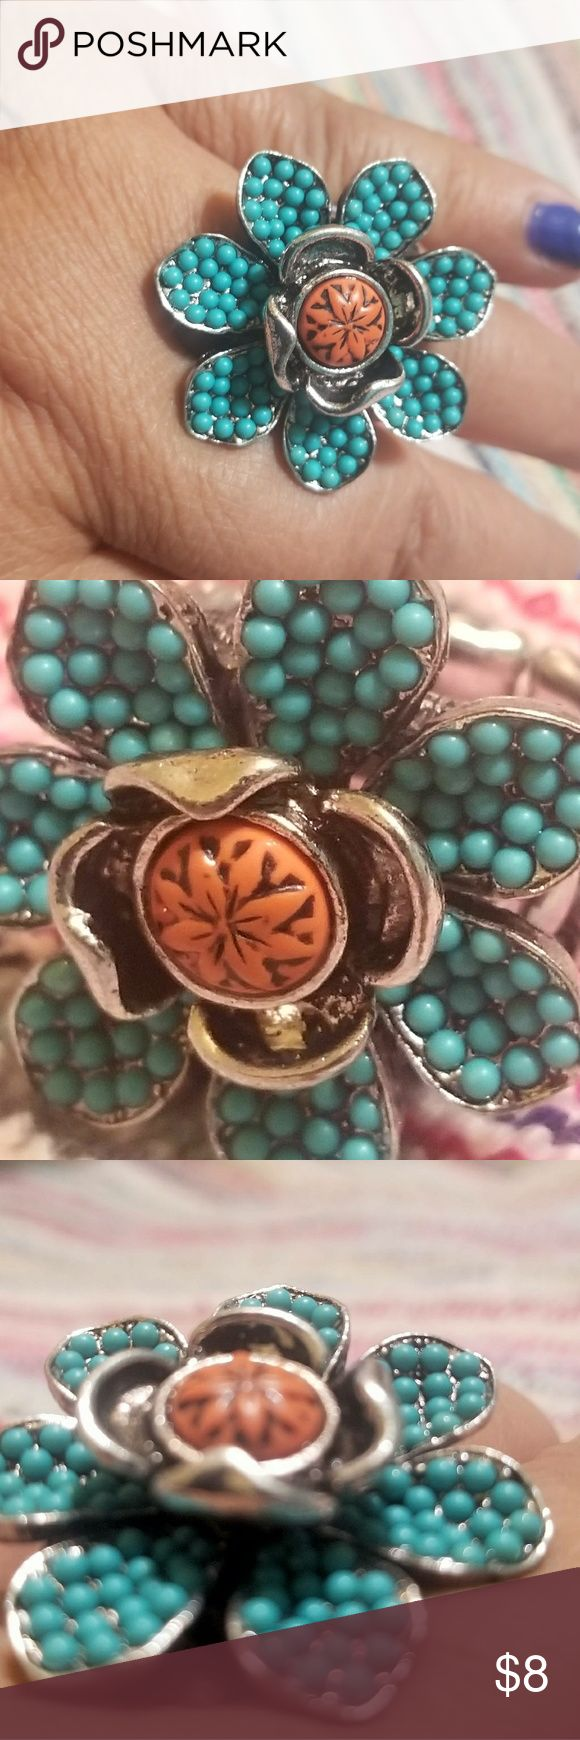 "Cute Blue and Orange Floral Ring Floral ring orange center with blur torqoise beaded petals. Stretch Band 1 1/4 "" diameter Jewelry Rings"